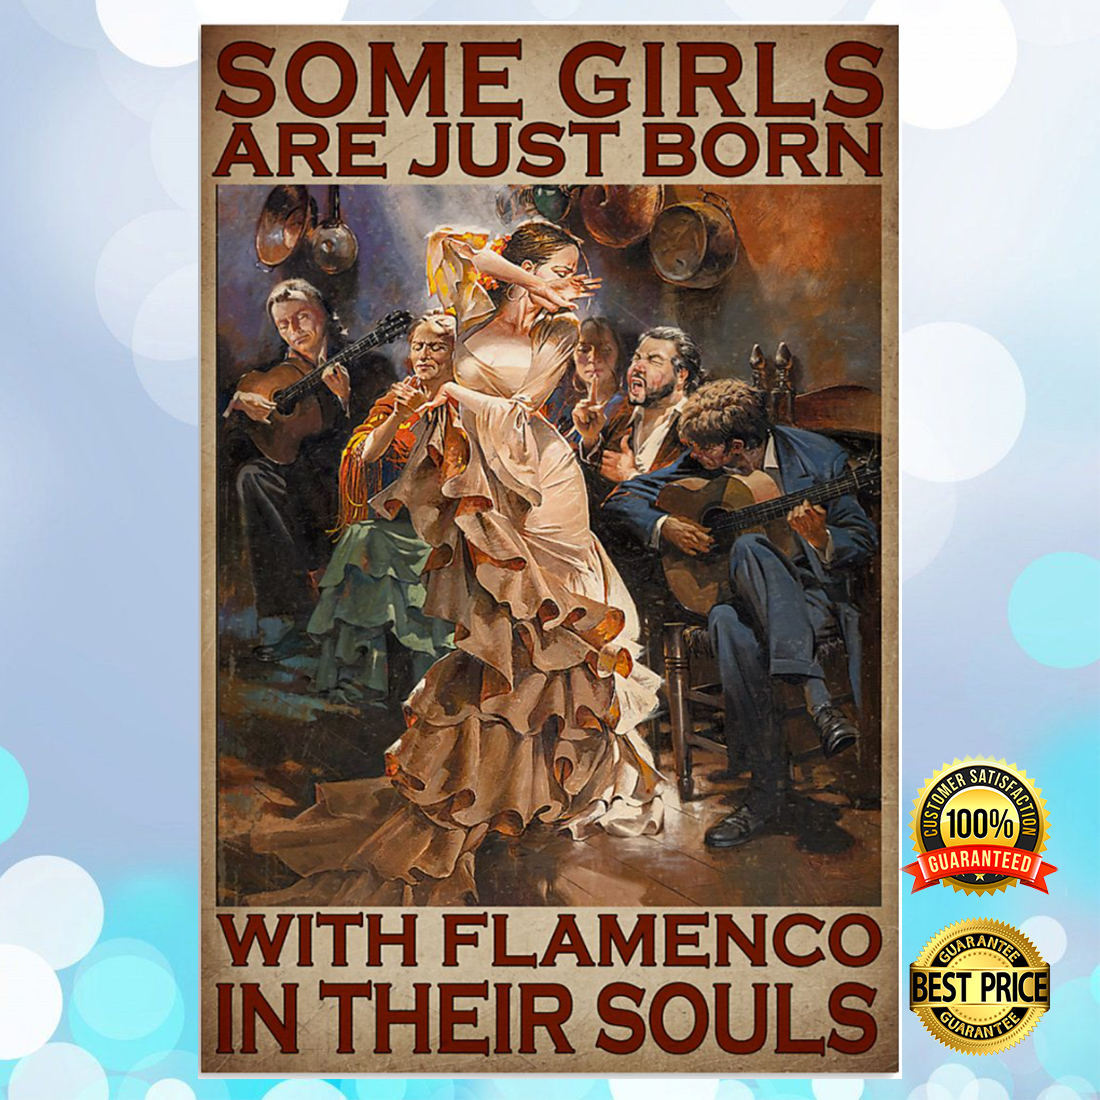 Some girls are just born with flamenco in their souls poster 5